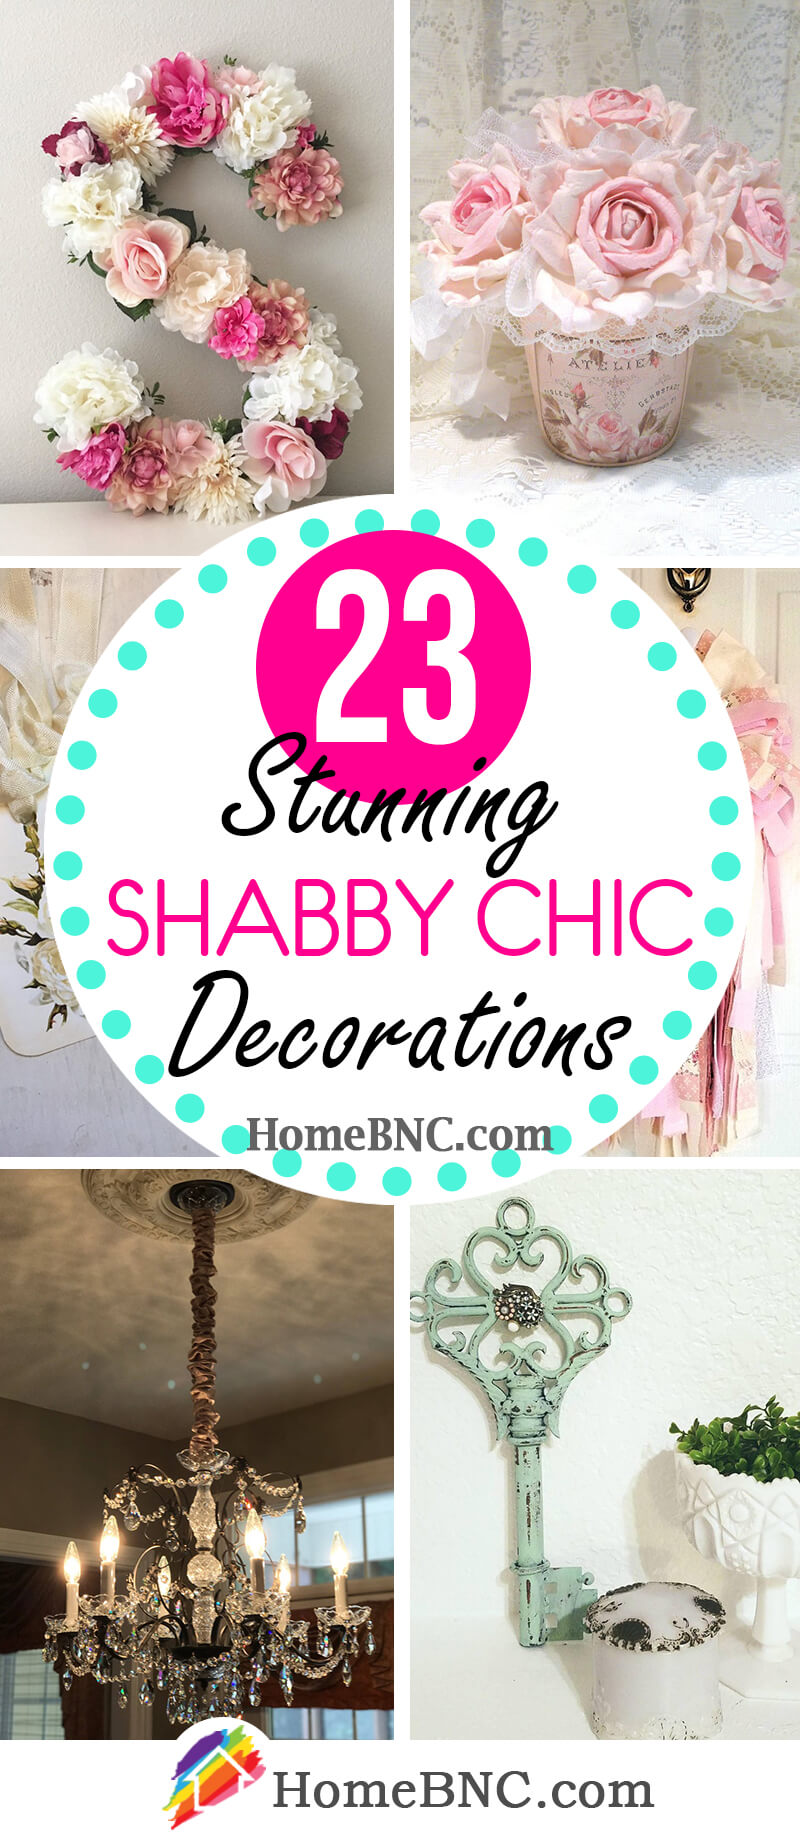 Best Shabby Chic Decor Ideas and Designs